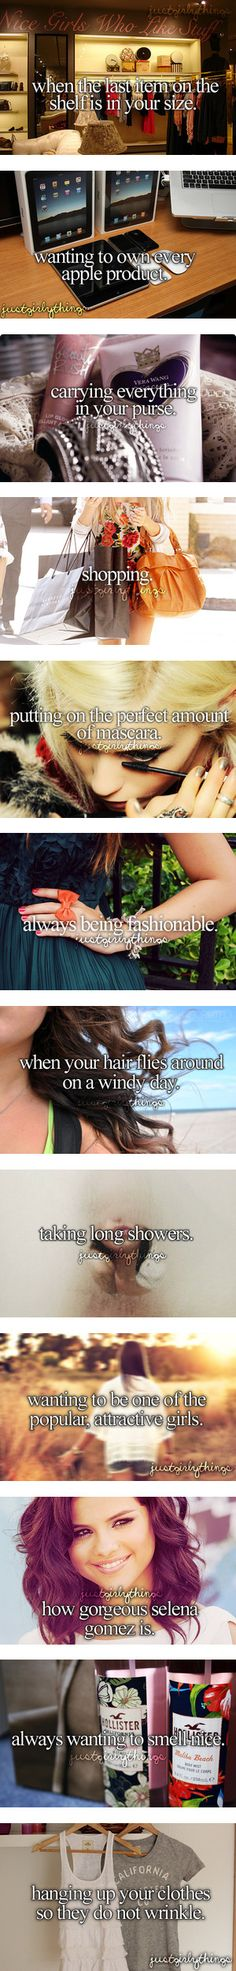 """""""just girly things 2"""" by mckenna-775 ❤ liked on Polyvore"""